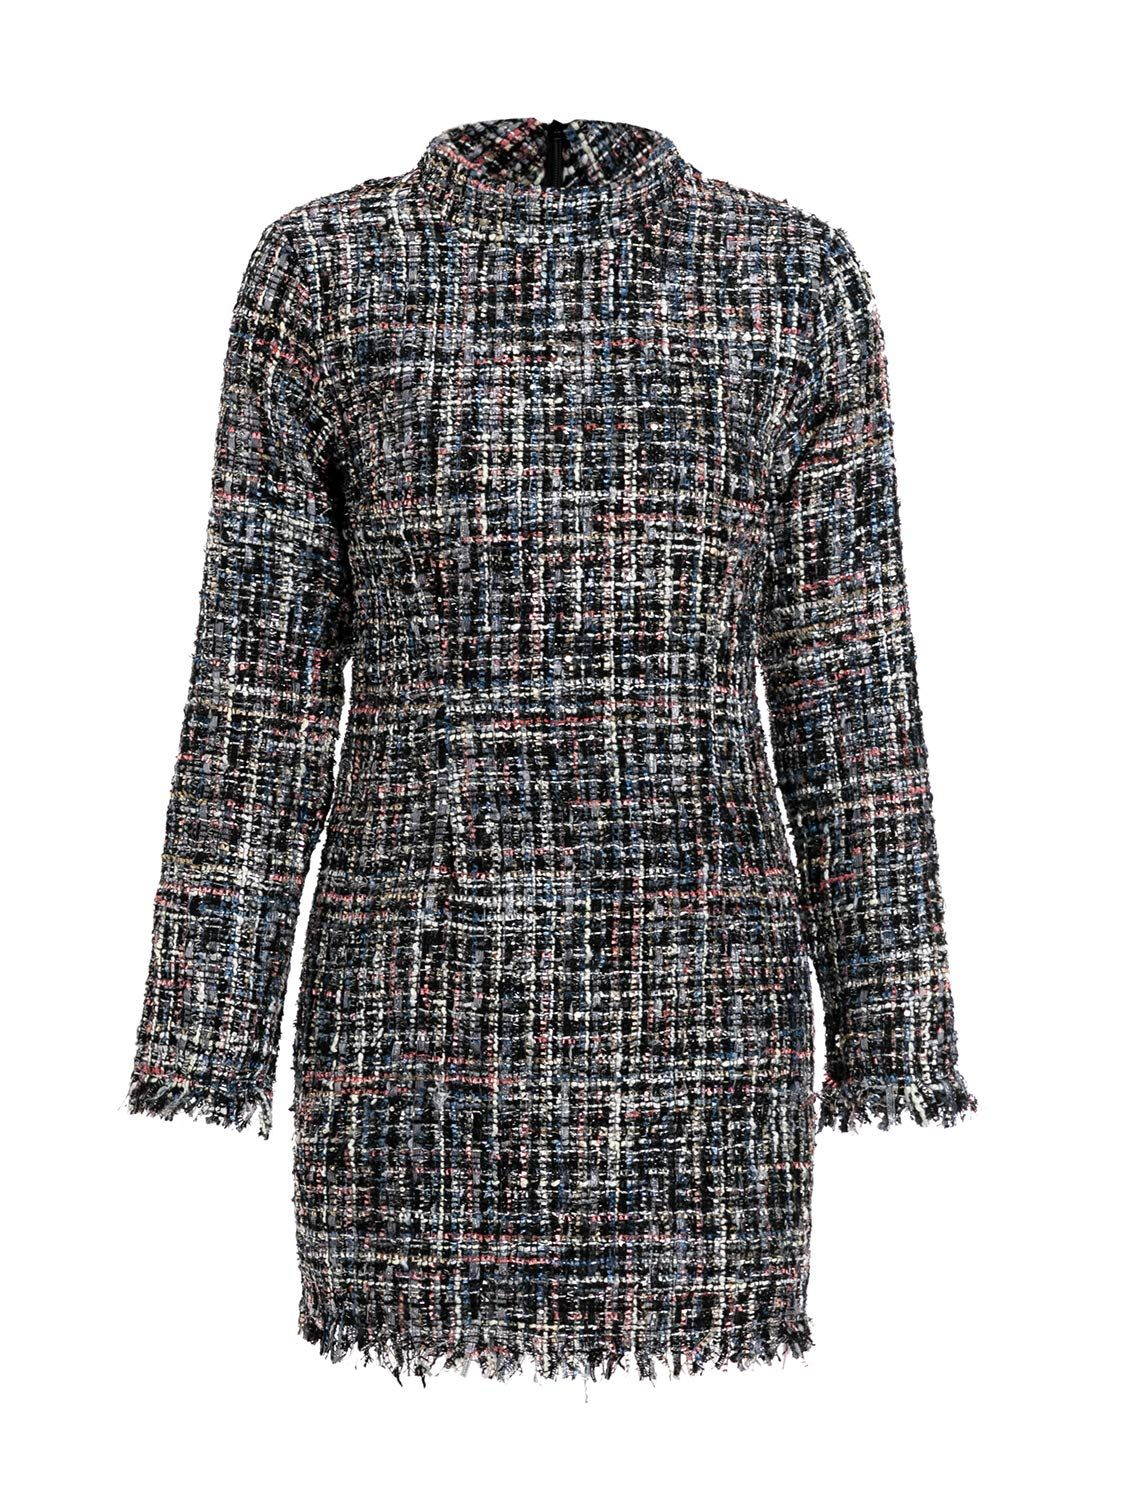 c613214cbfd Miessial Women s Plaid Tweed Mini Dress Long Sleeve Elegant Office Dress